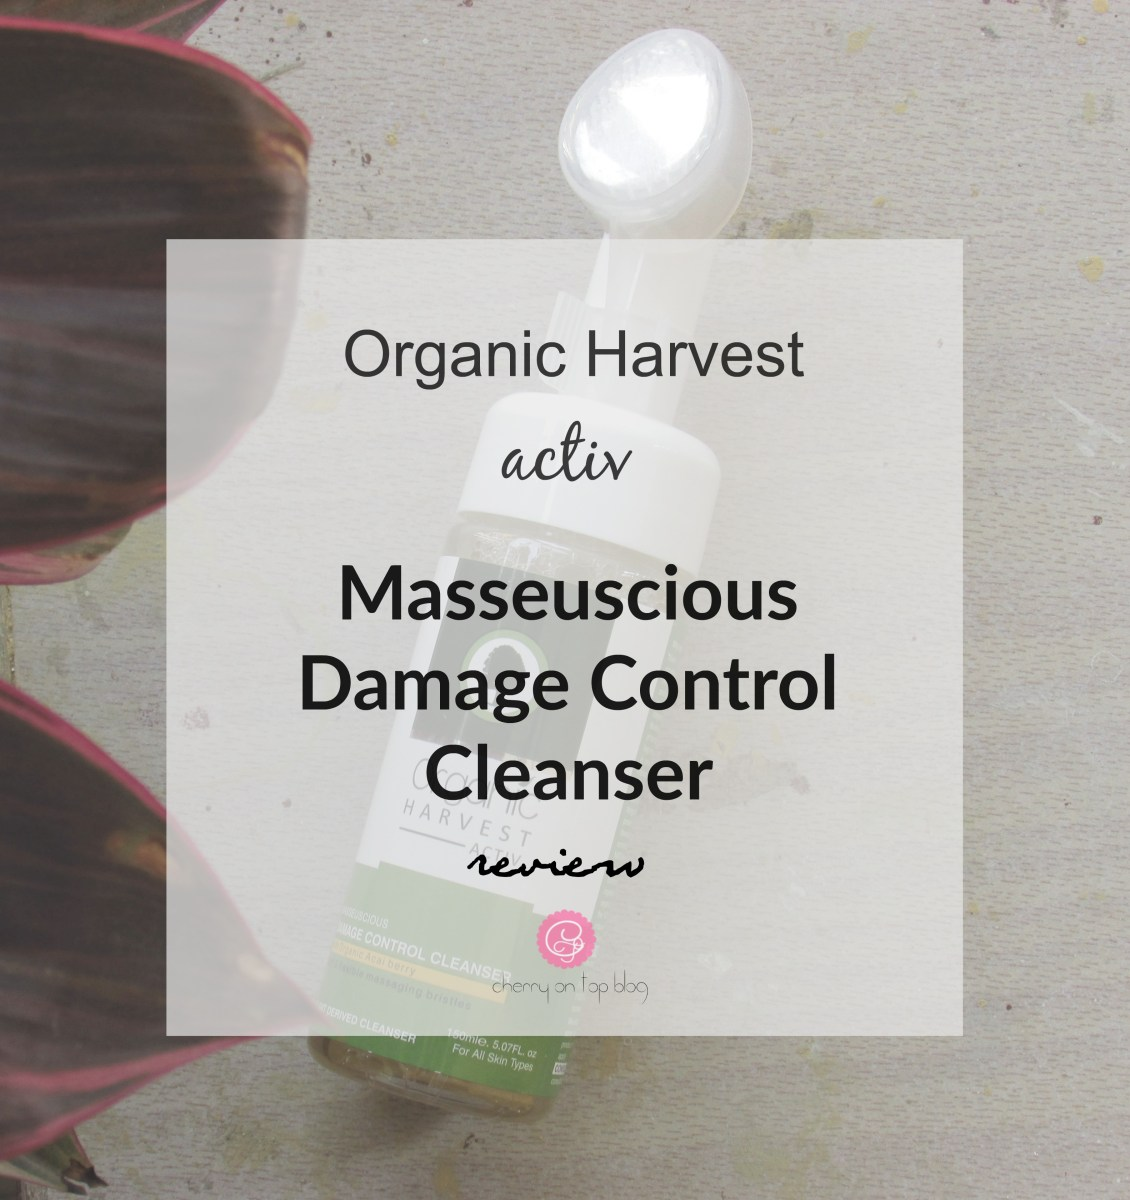 Organic Harvest Masseuscious Damage Control Cleanser| Review